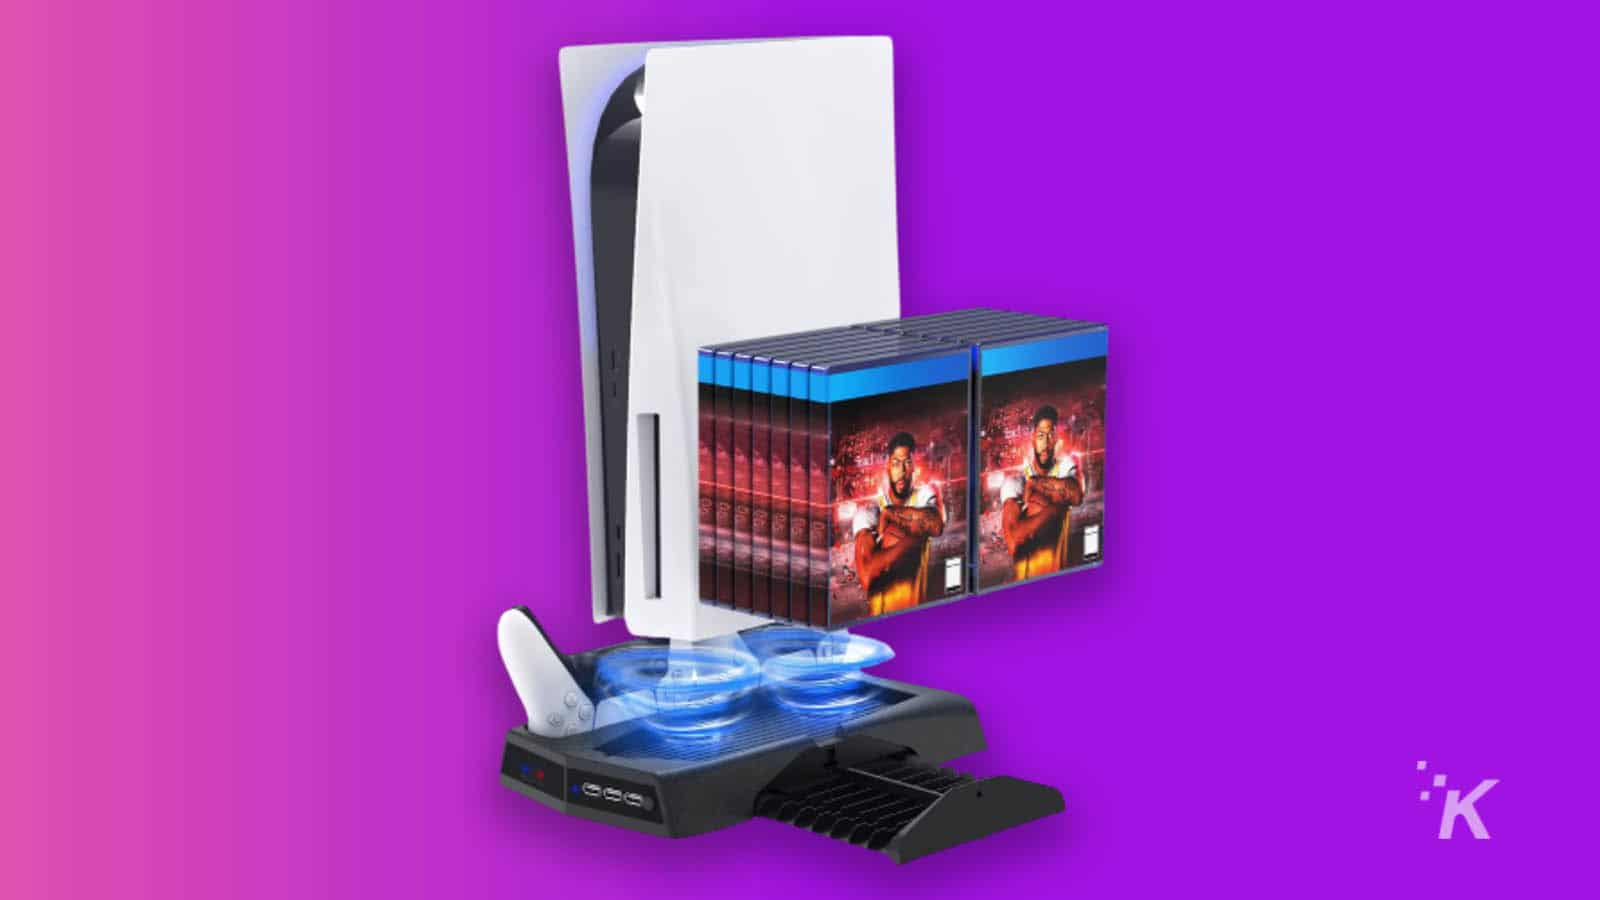 ps5 stand and controller charger